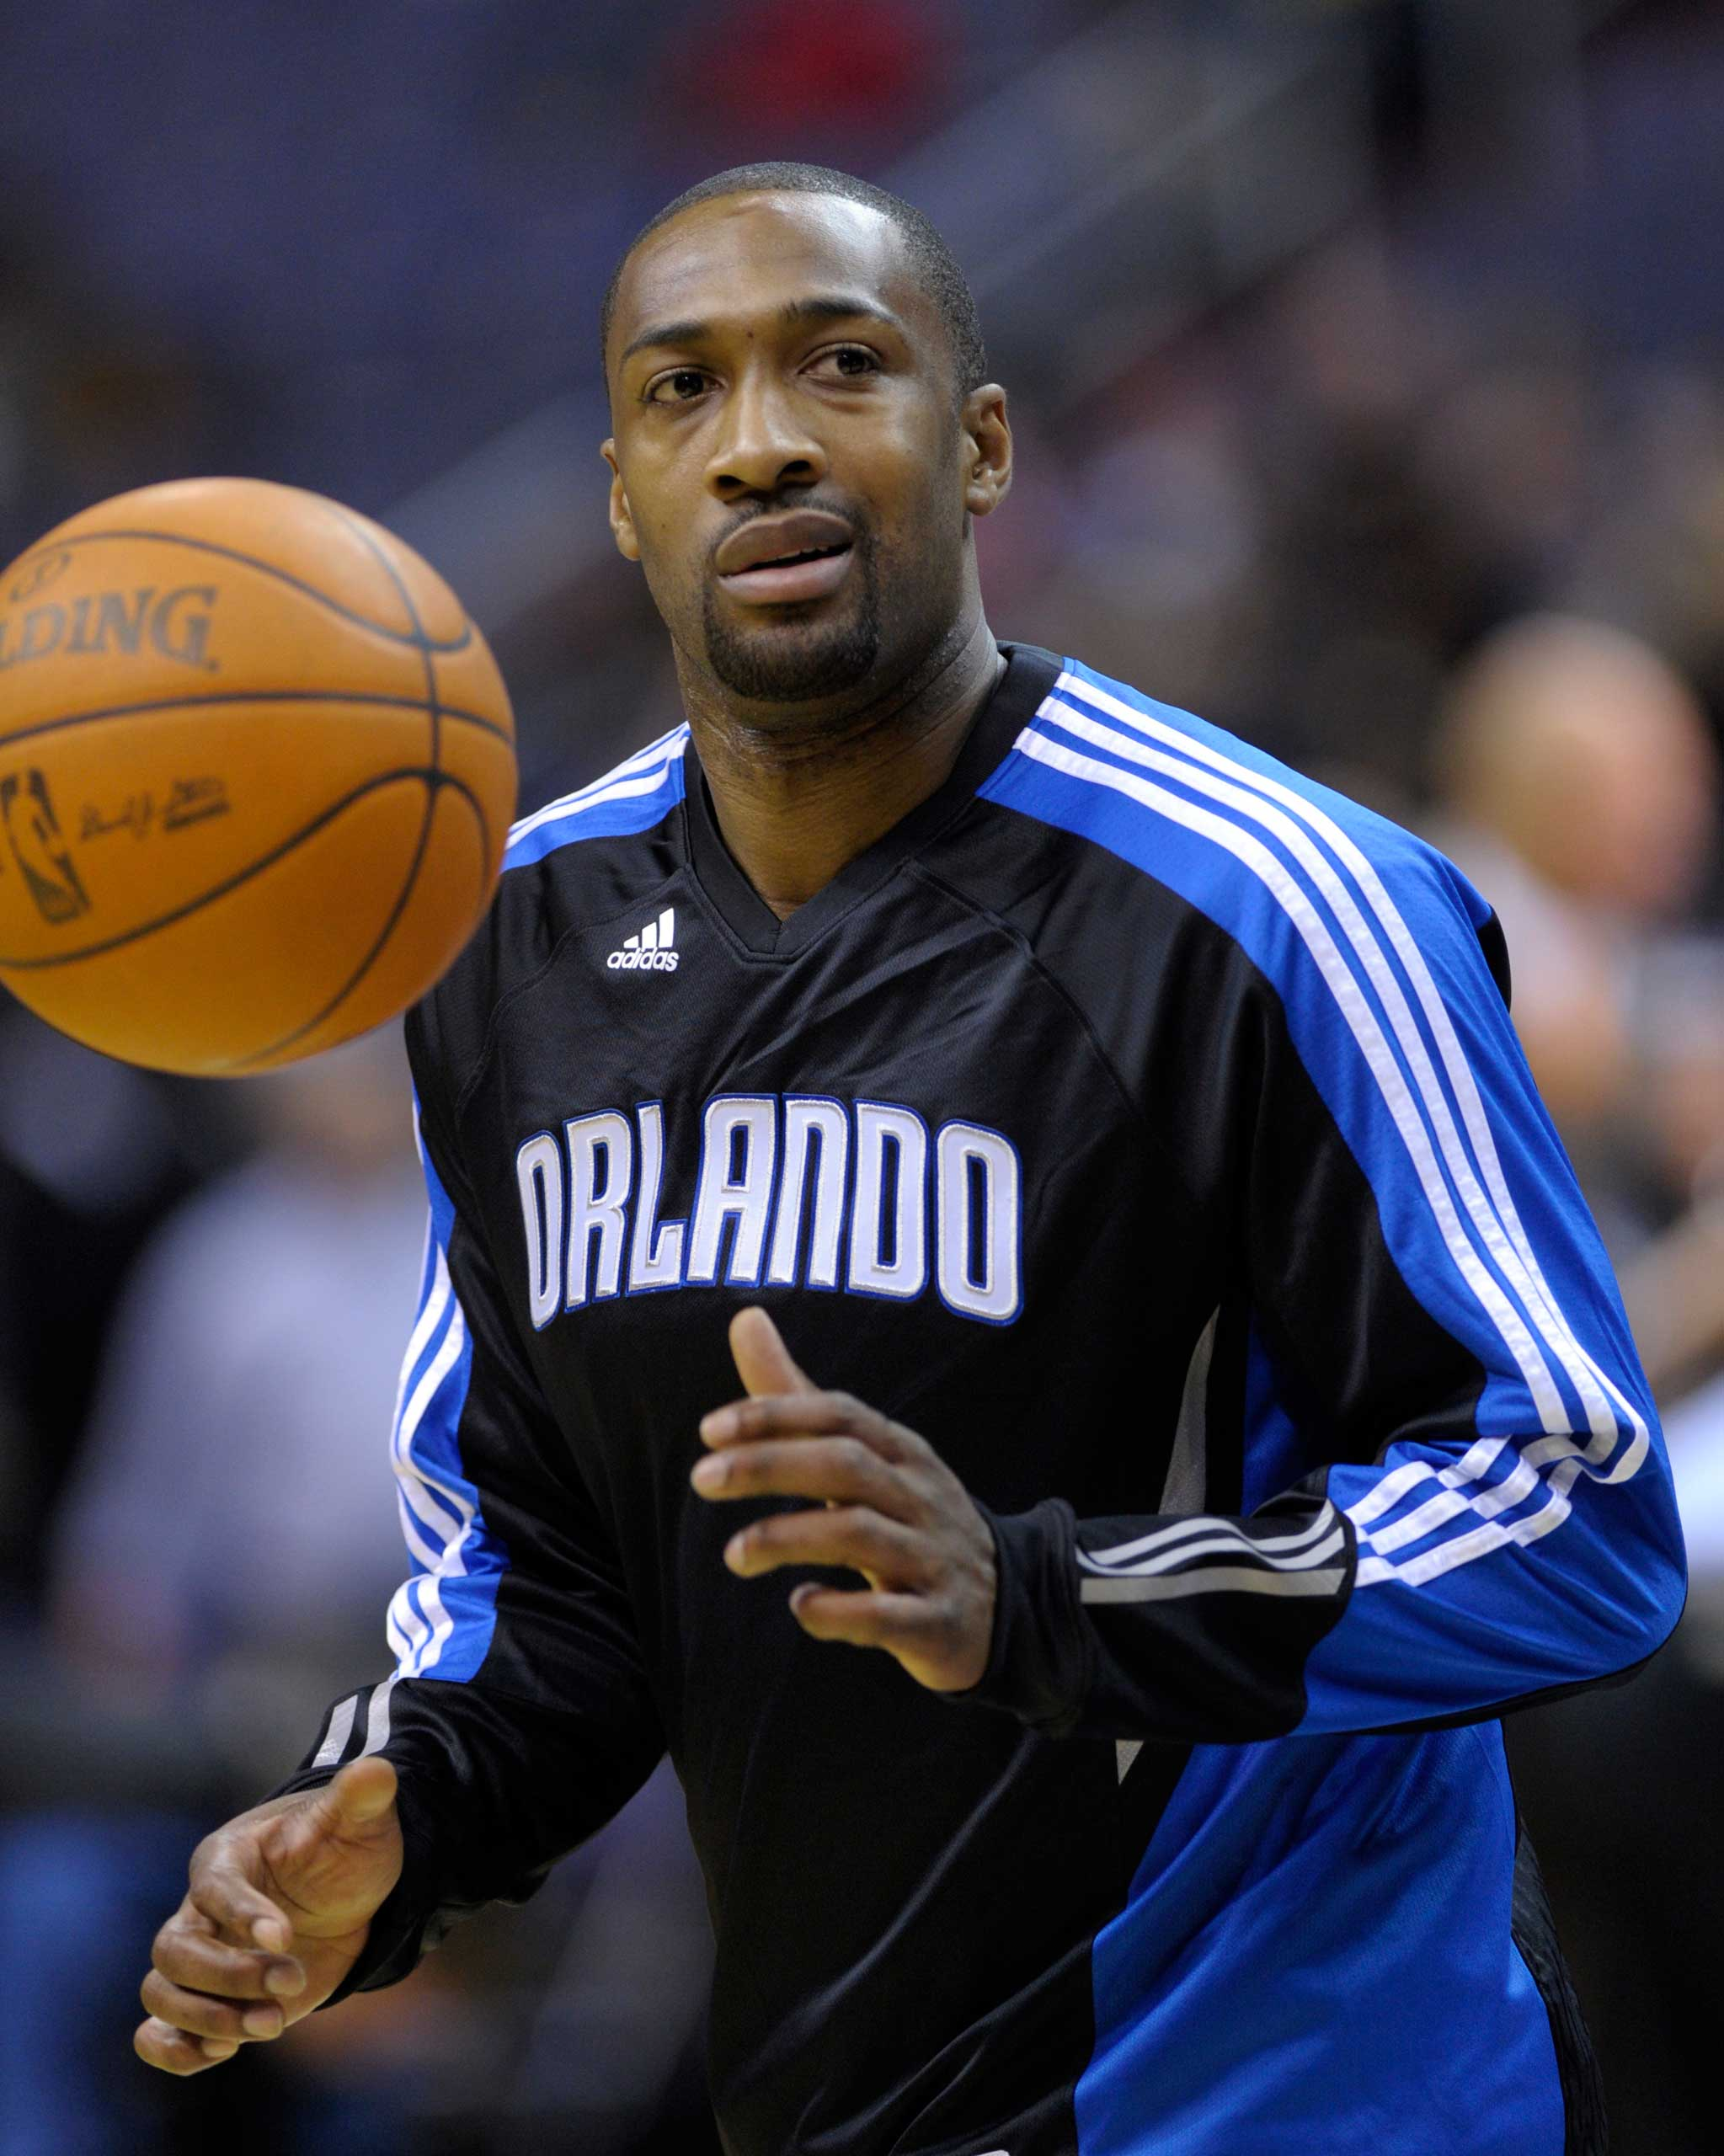 <b>Gilbert Arenas</b> The basketball star was born in Florida and raised in Los Angeles. His paternal great-grandfather descended from Cuba.